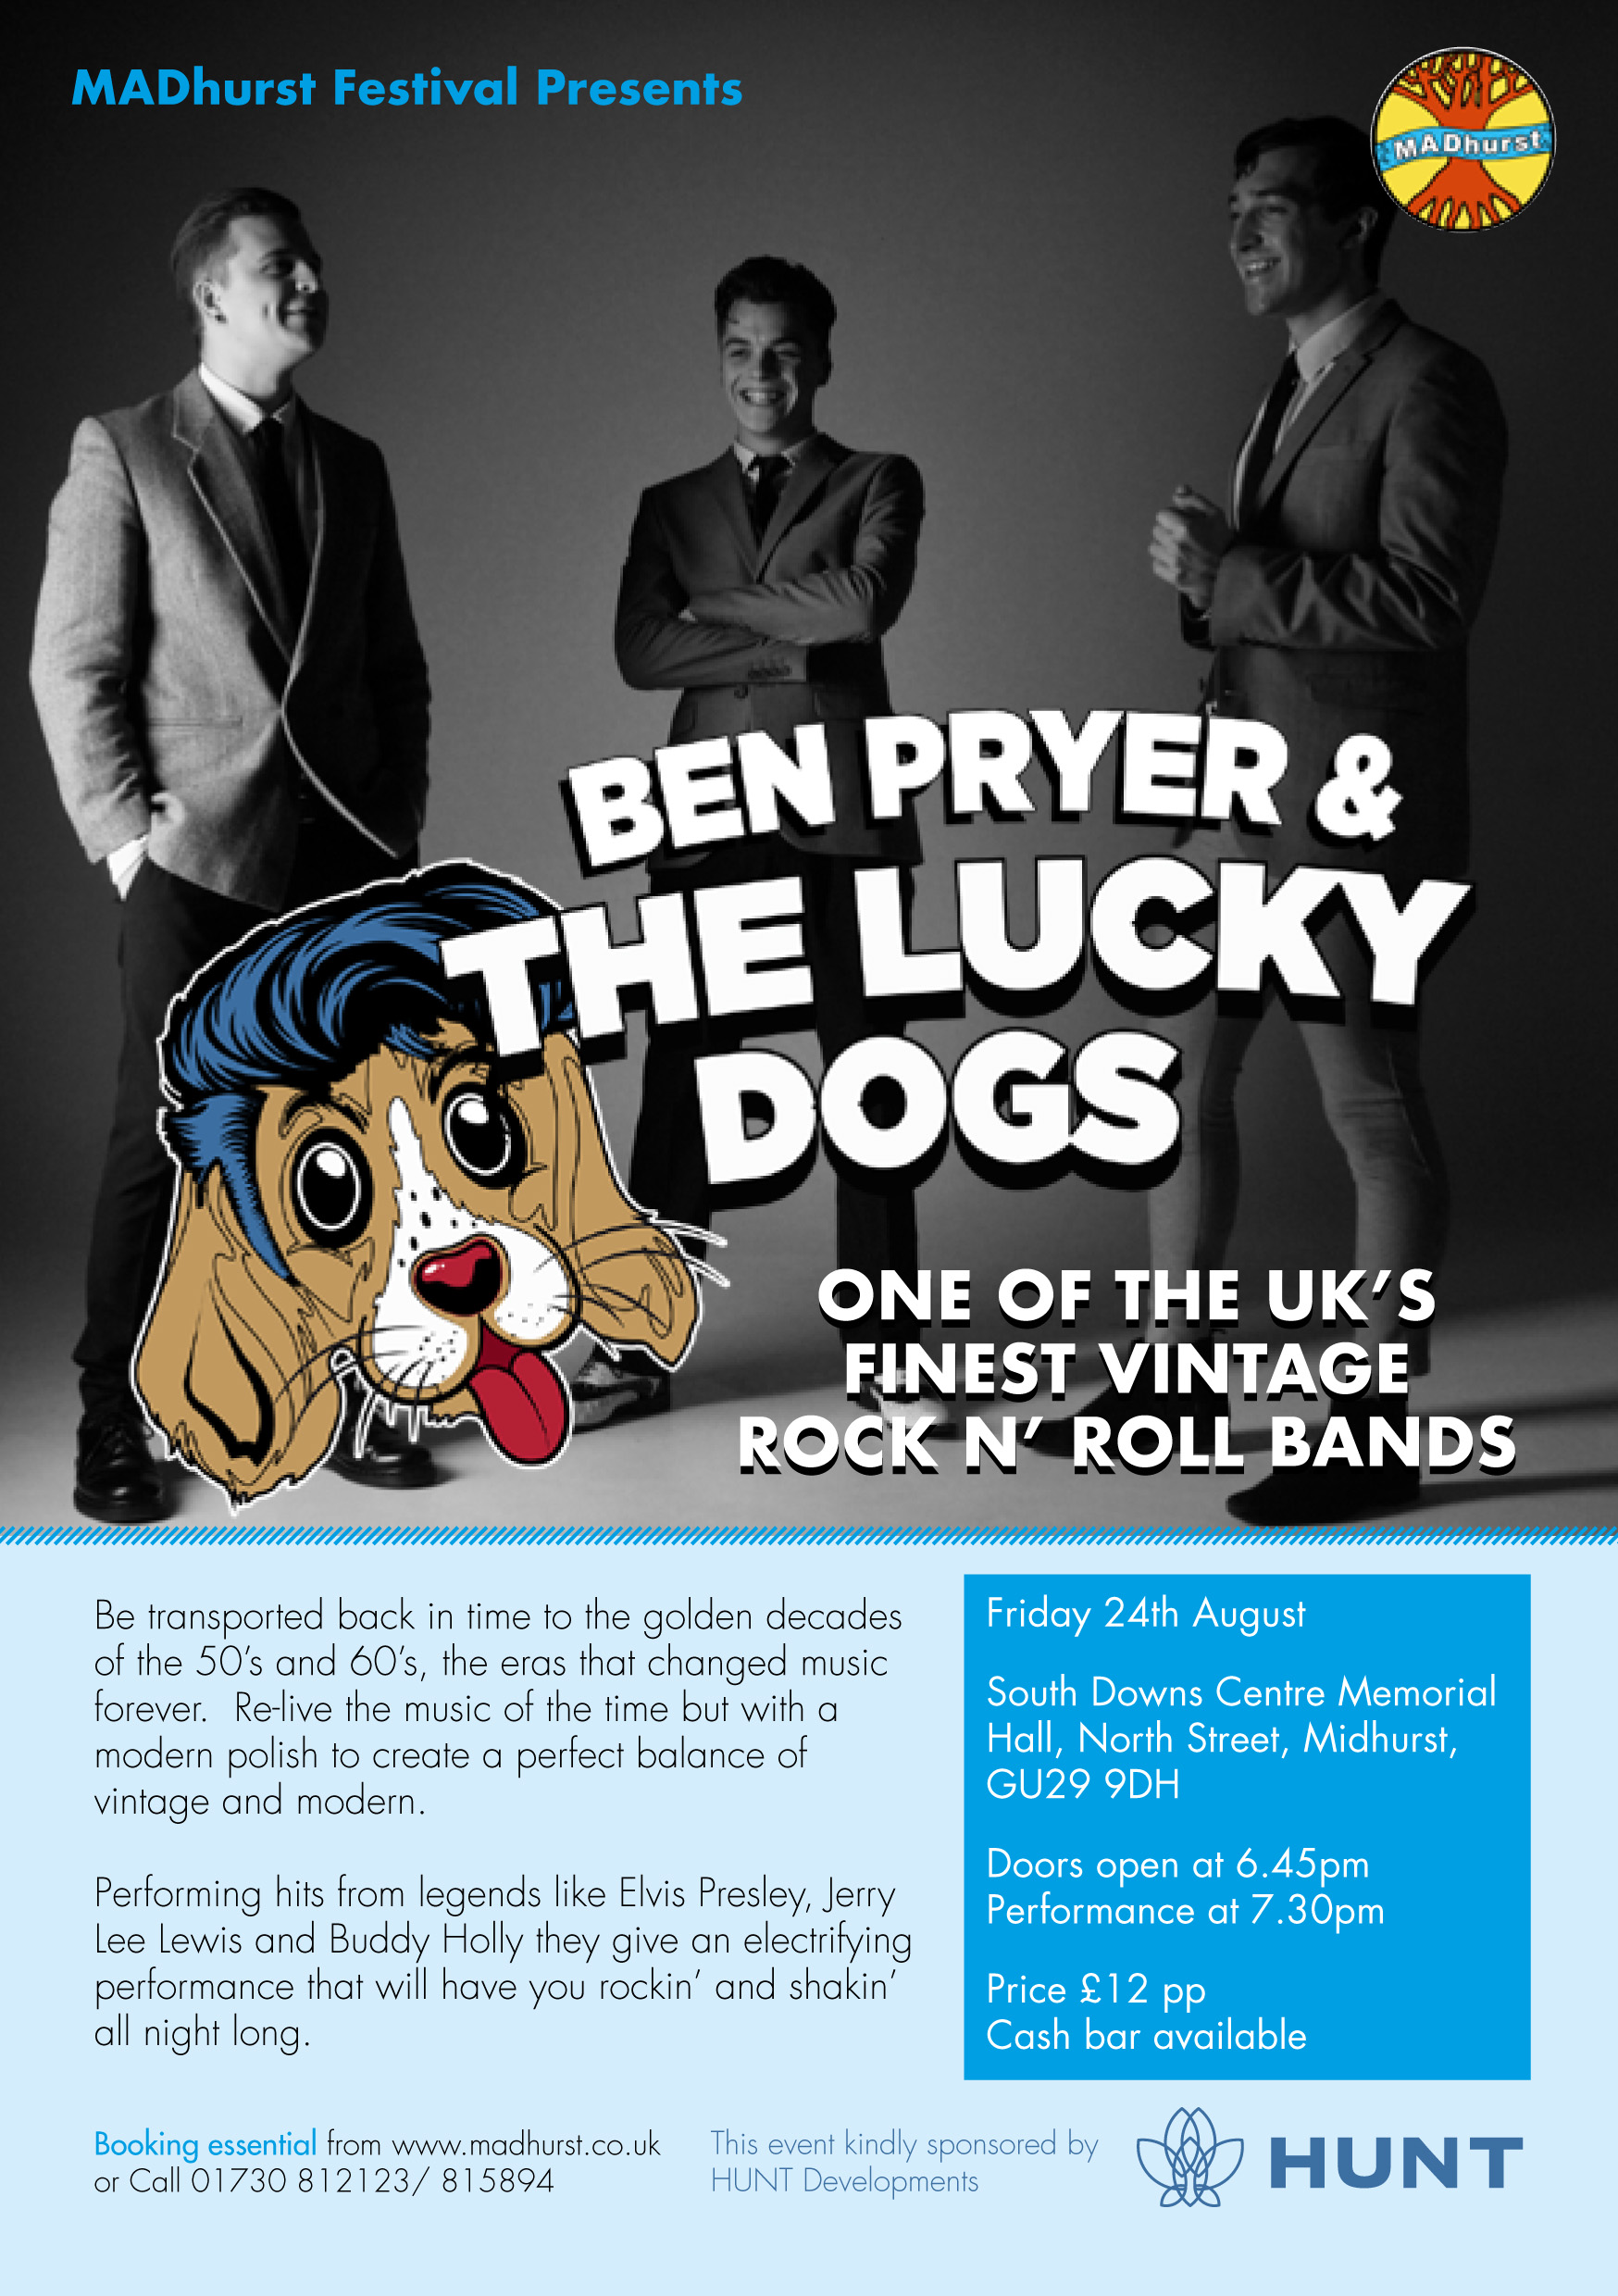 MADHURST_Ben Pryer and the Lucky Dogs